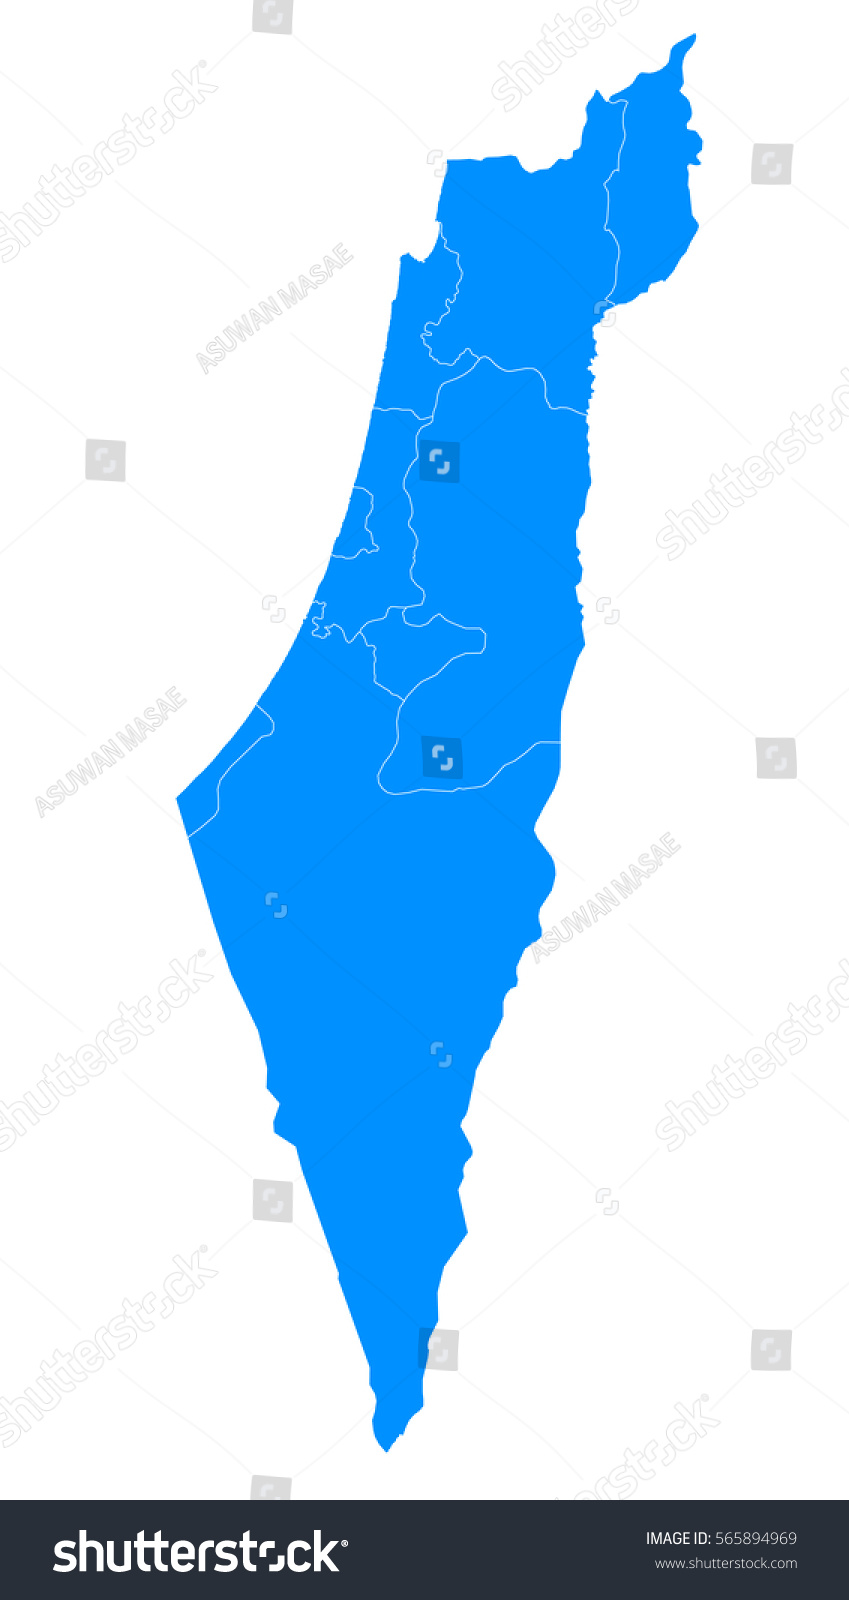 Blue Map Israel Stock Vector Shutterstock - Isreal map